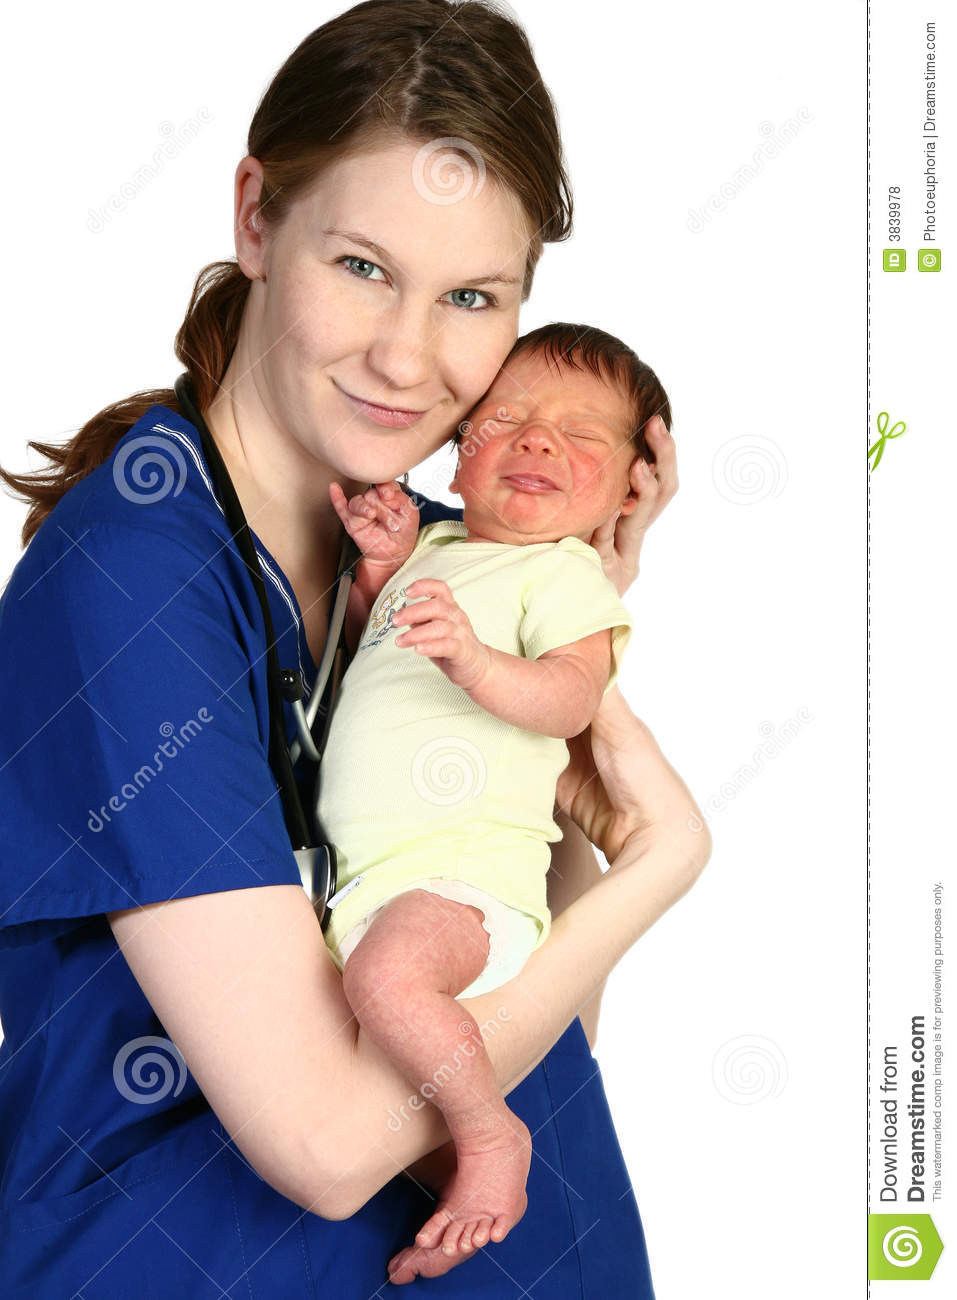 Baby Newborn And Nurse Royalty Free Stock Photos - Image: 3839978